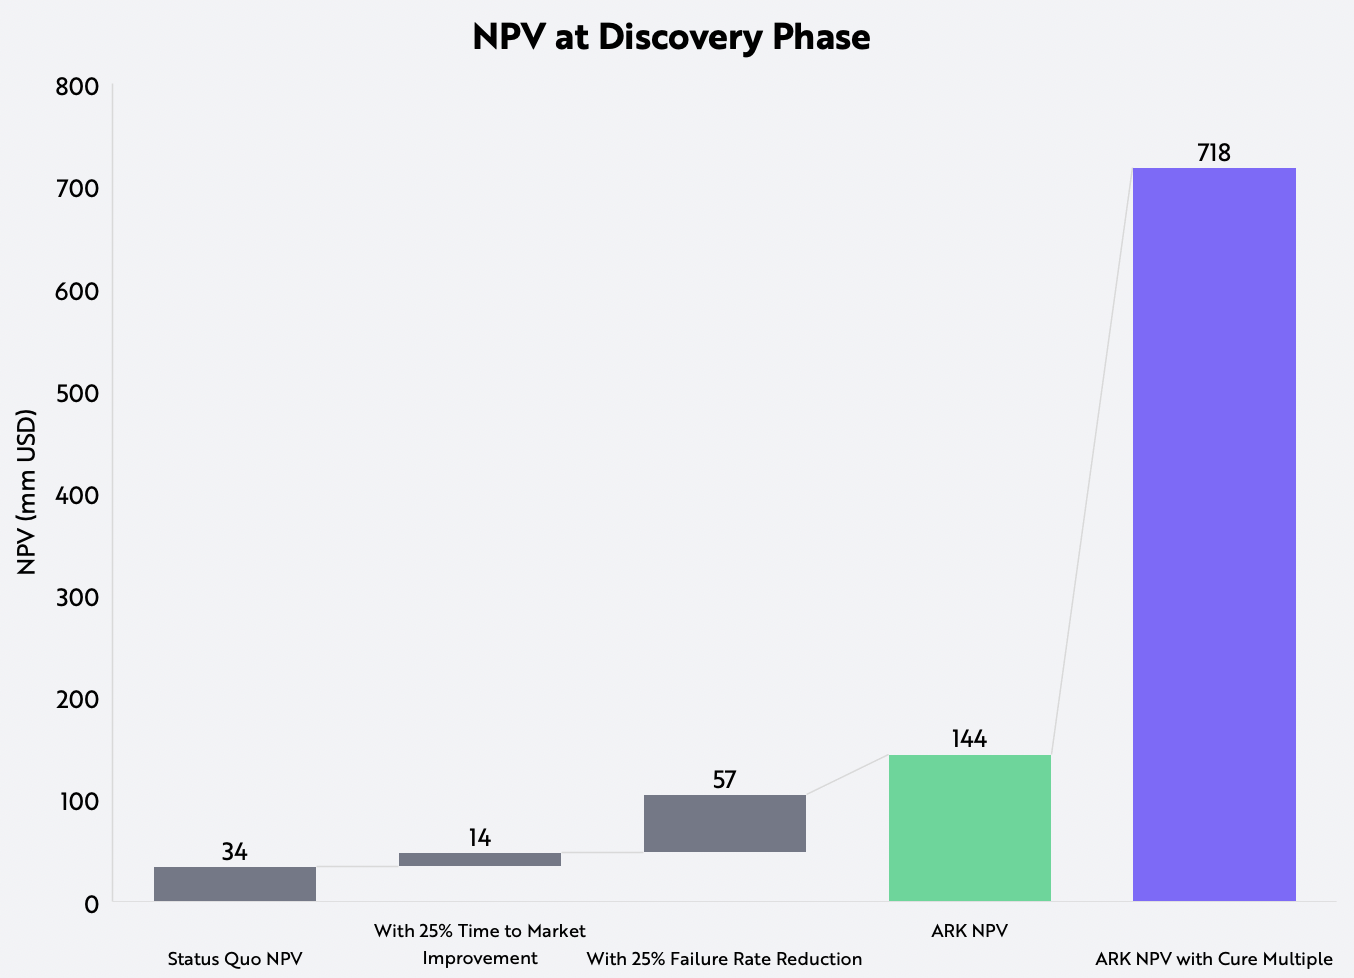 Biopharmaceutical Pipeline Technology NPV Discovery Phase